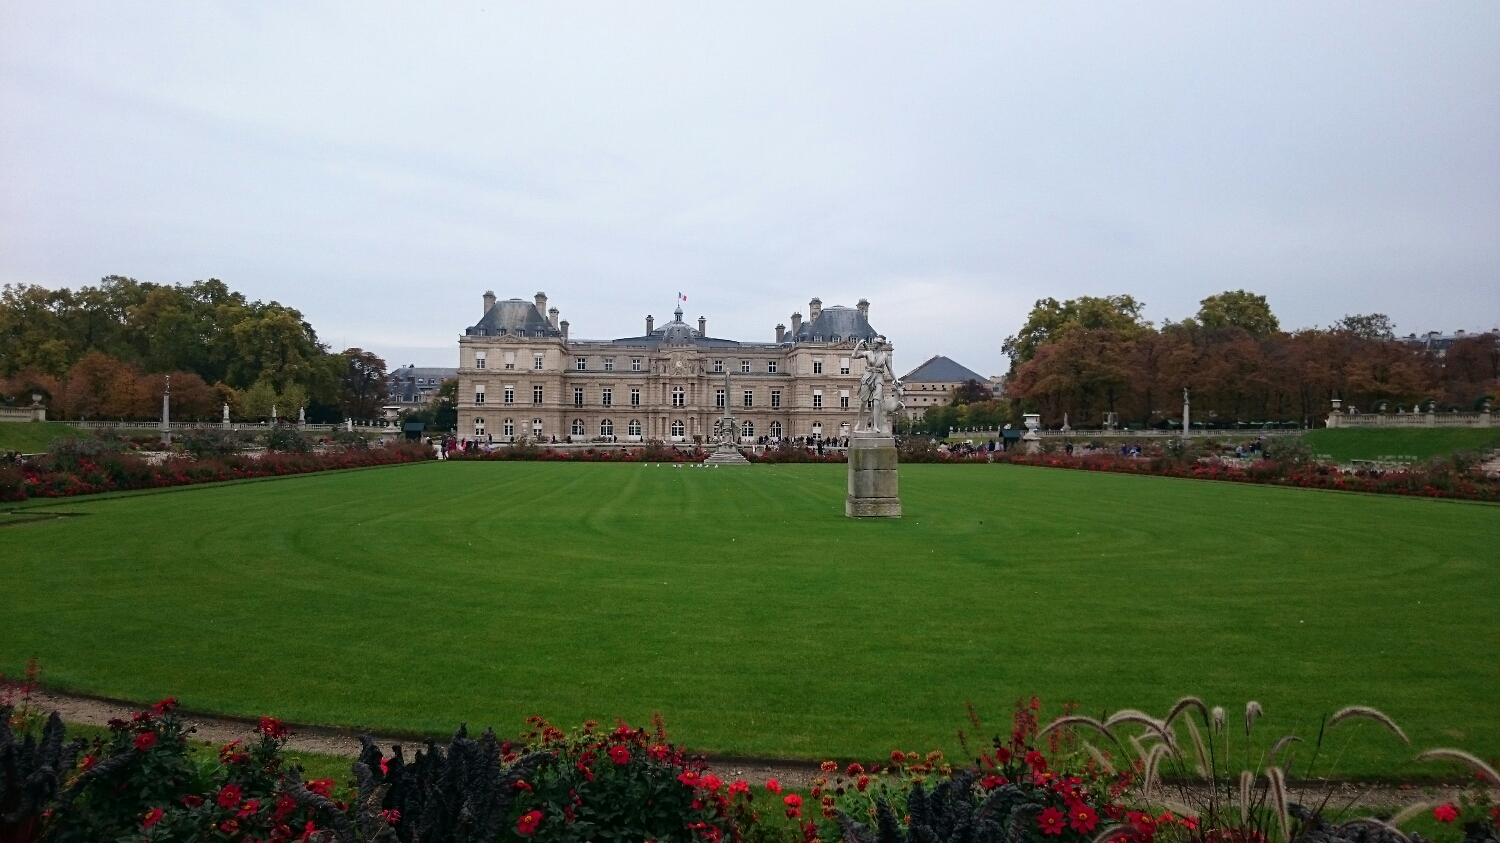 Hey Brits, Now THIS is a castle! (Luxembourg Gardens and Castle)